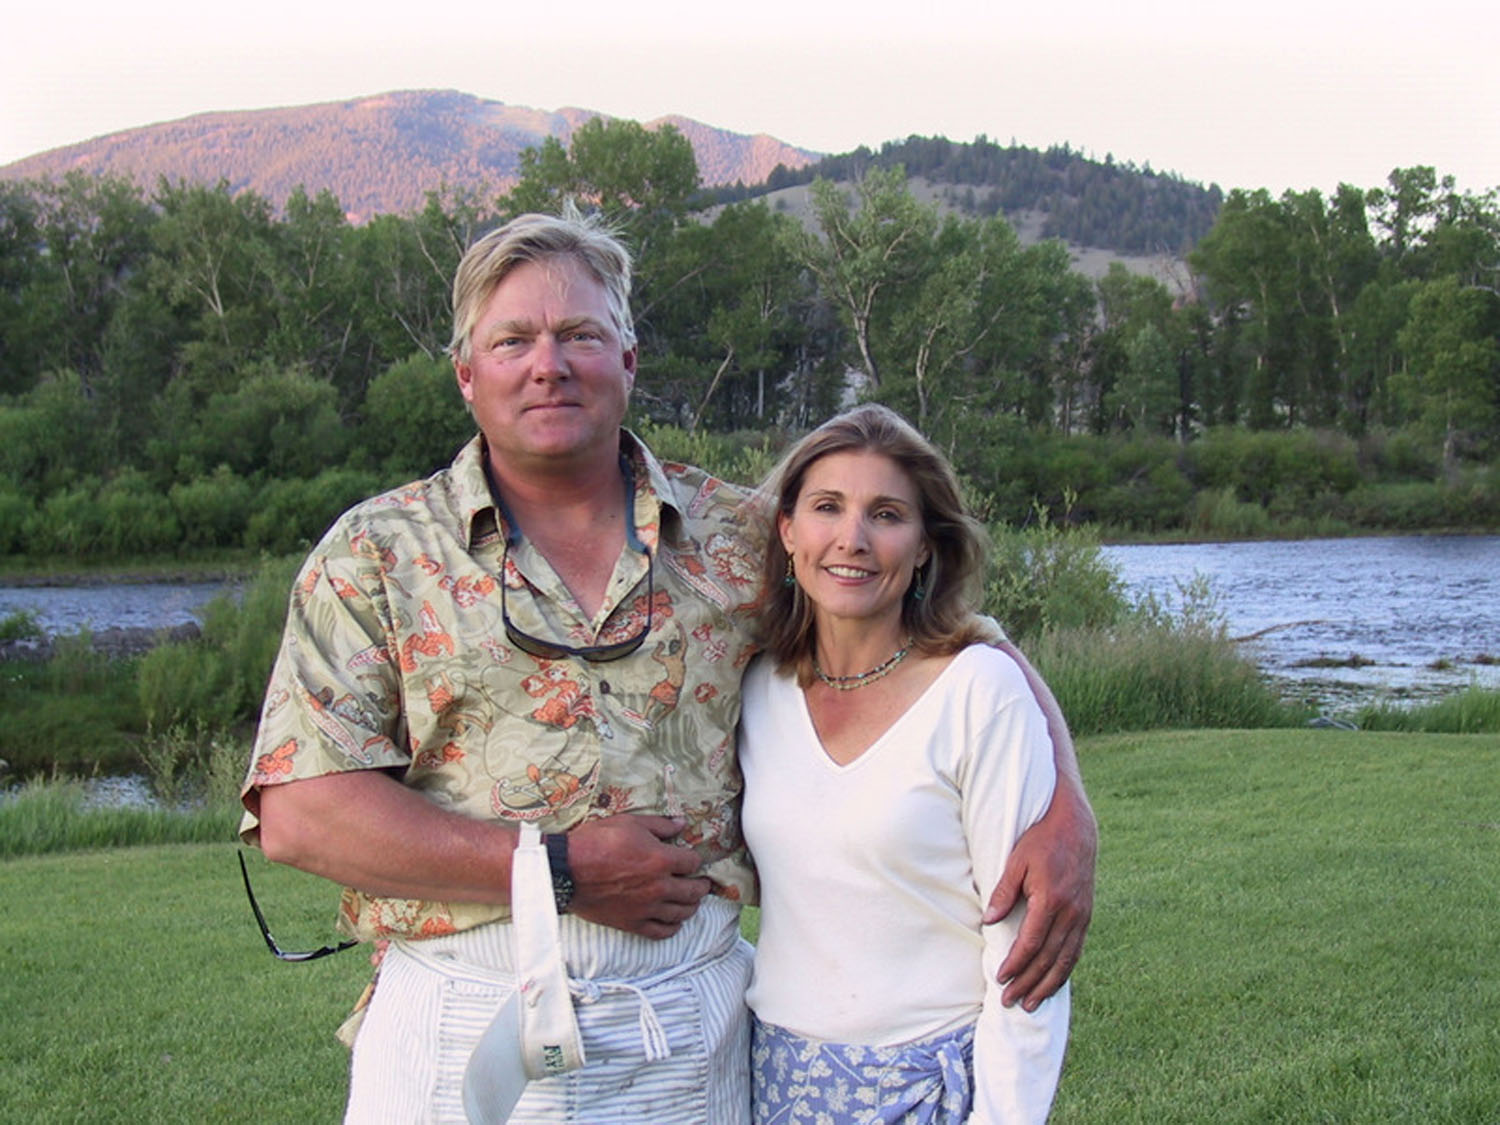 David and Christine Decker own the best fly fishing lodge in Montana called the Complete Fly Fisher.